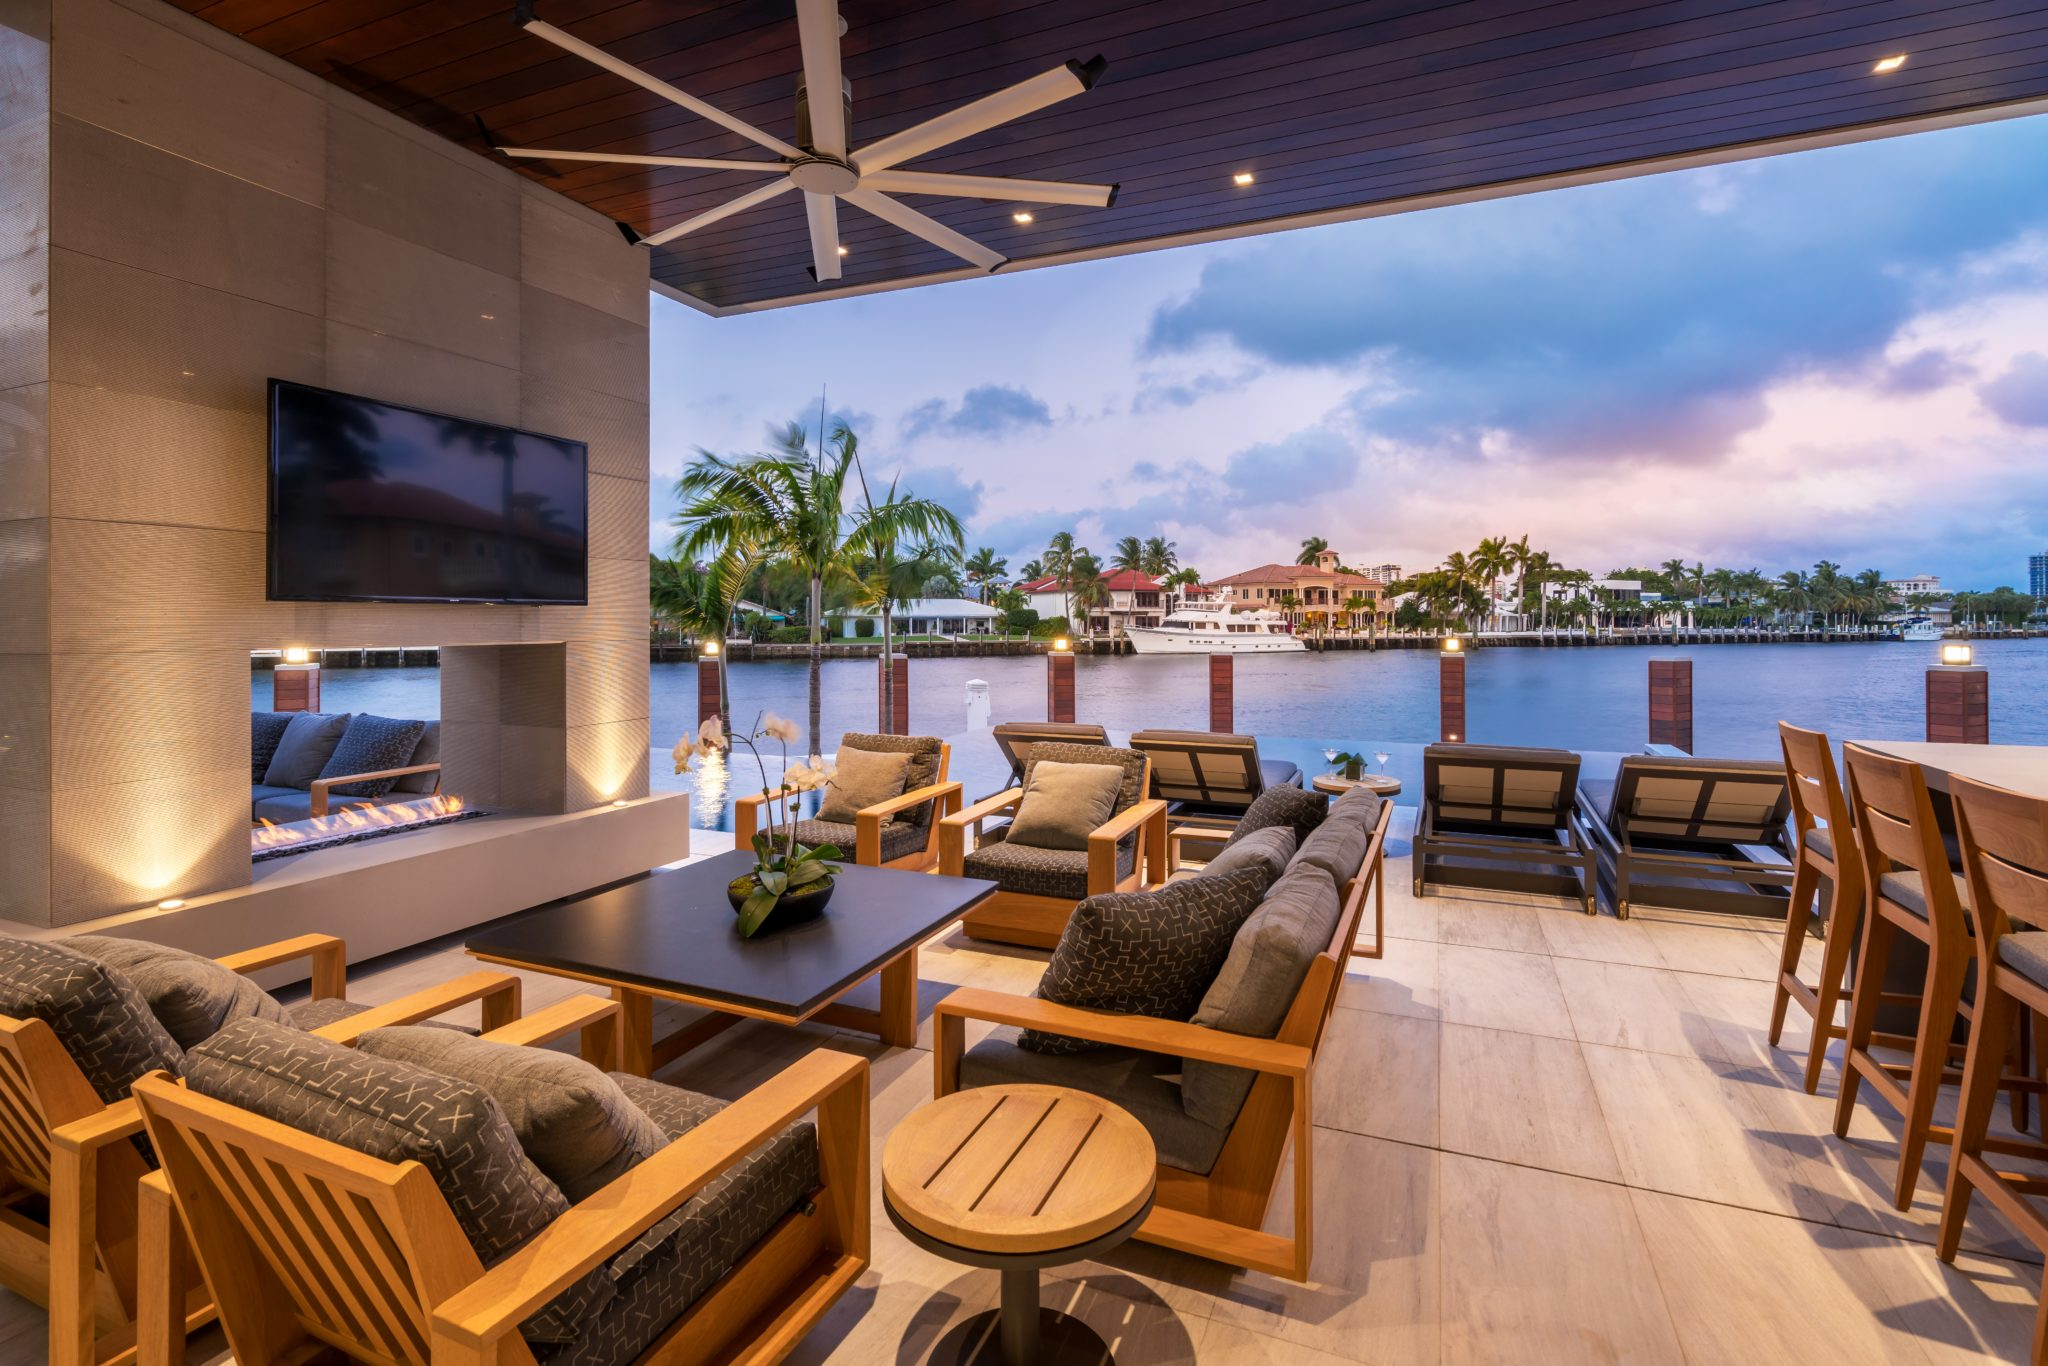 Intracoastal Outdoor by B+G Design